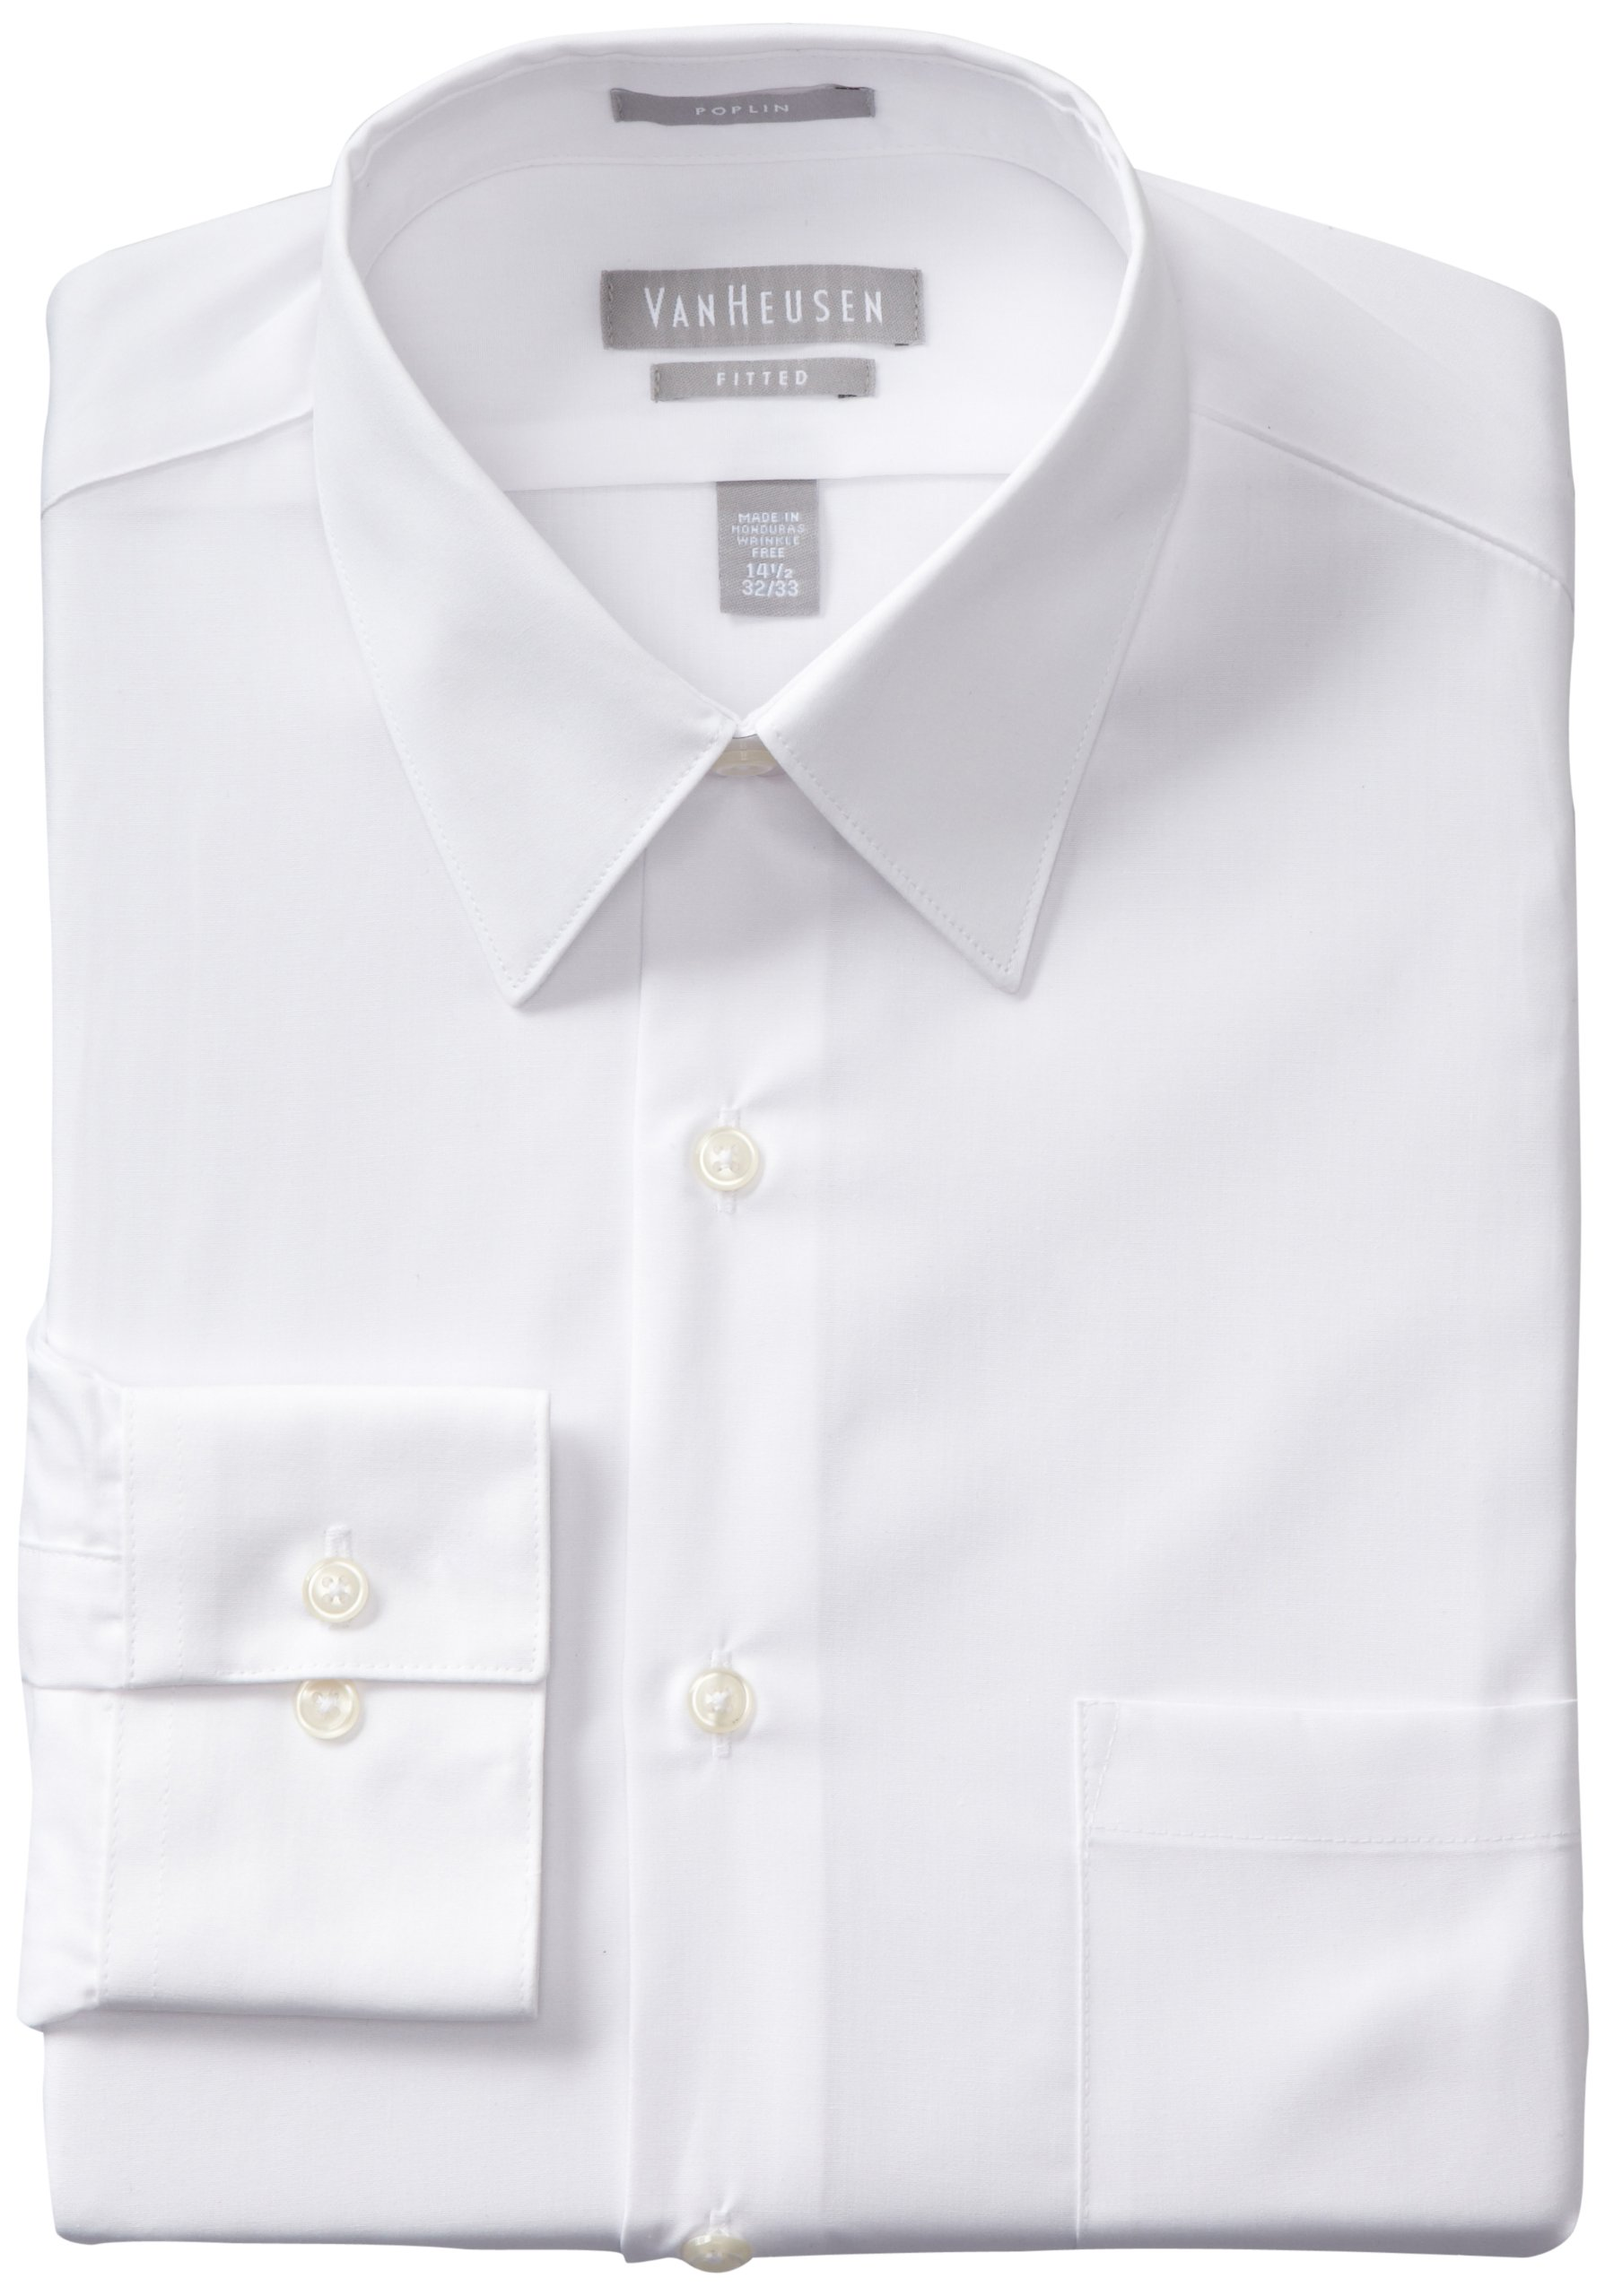 Van Heusen Men's Poplin Fitted Solid Point Collar Dress Shirt, White, 18.5'' Neck 34''-35'' Sleeve